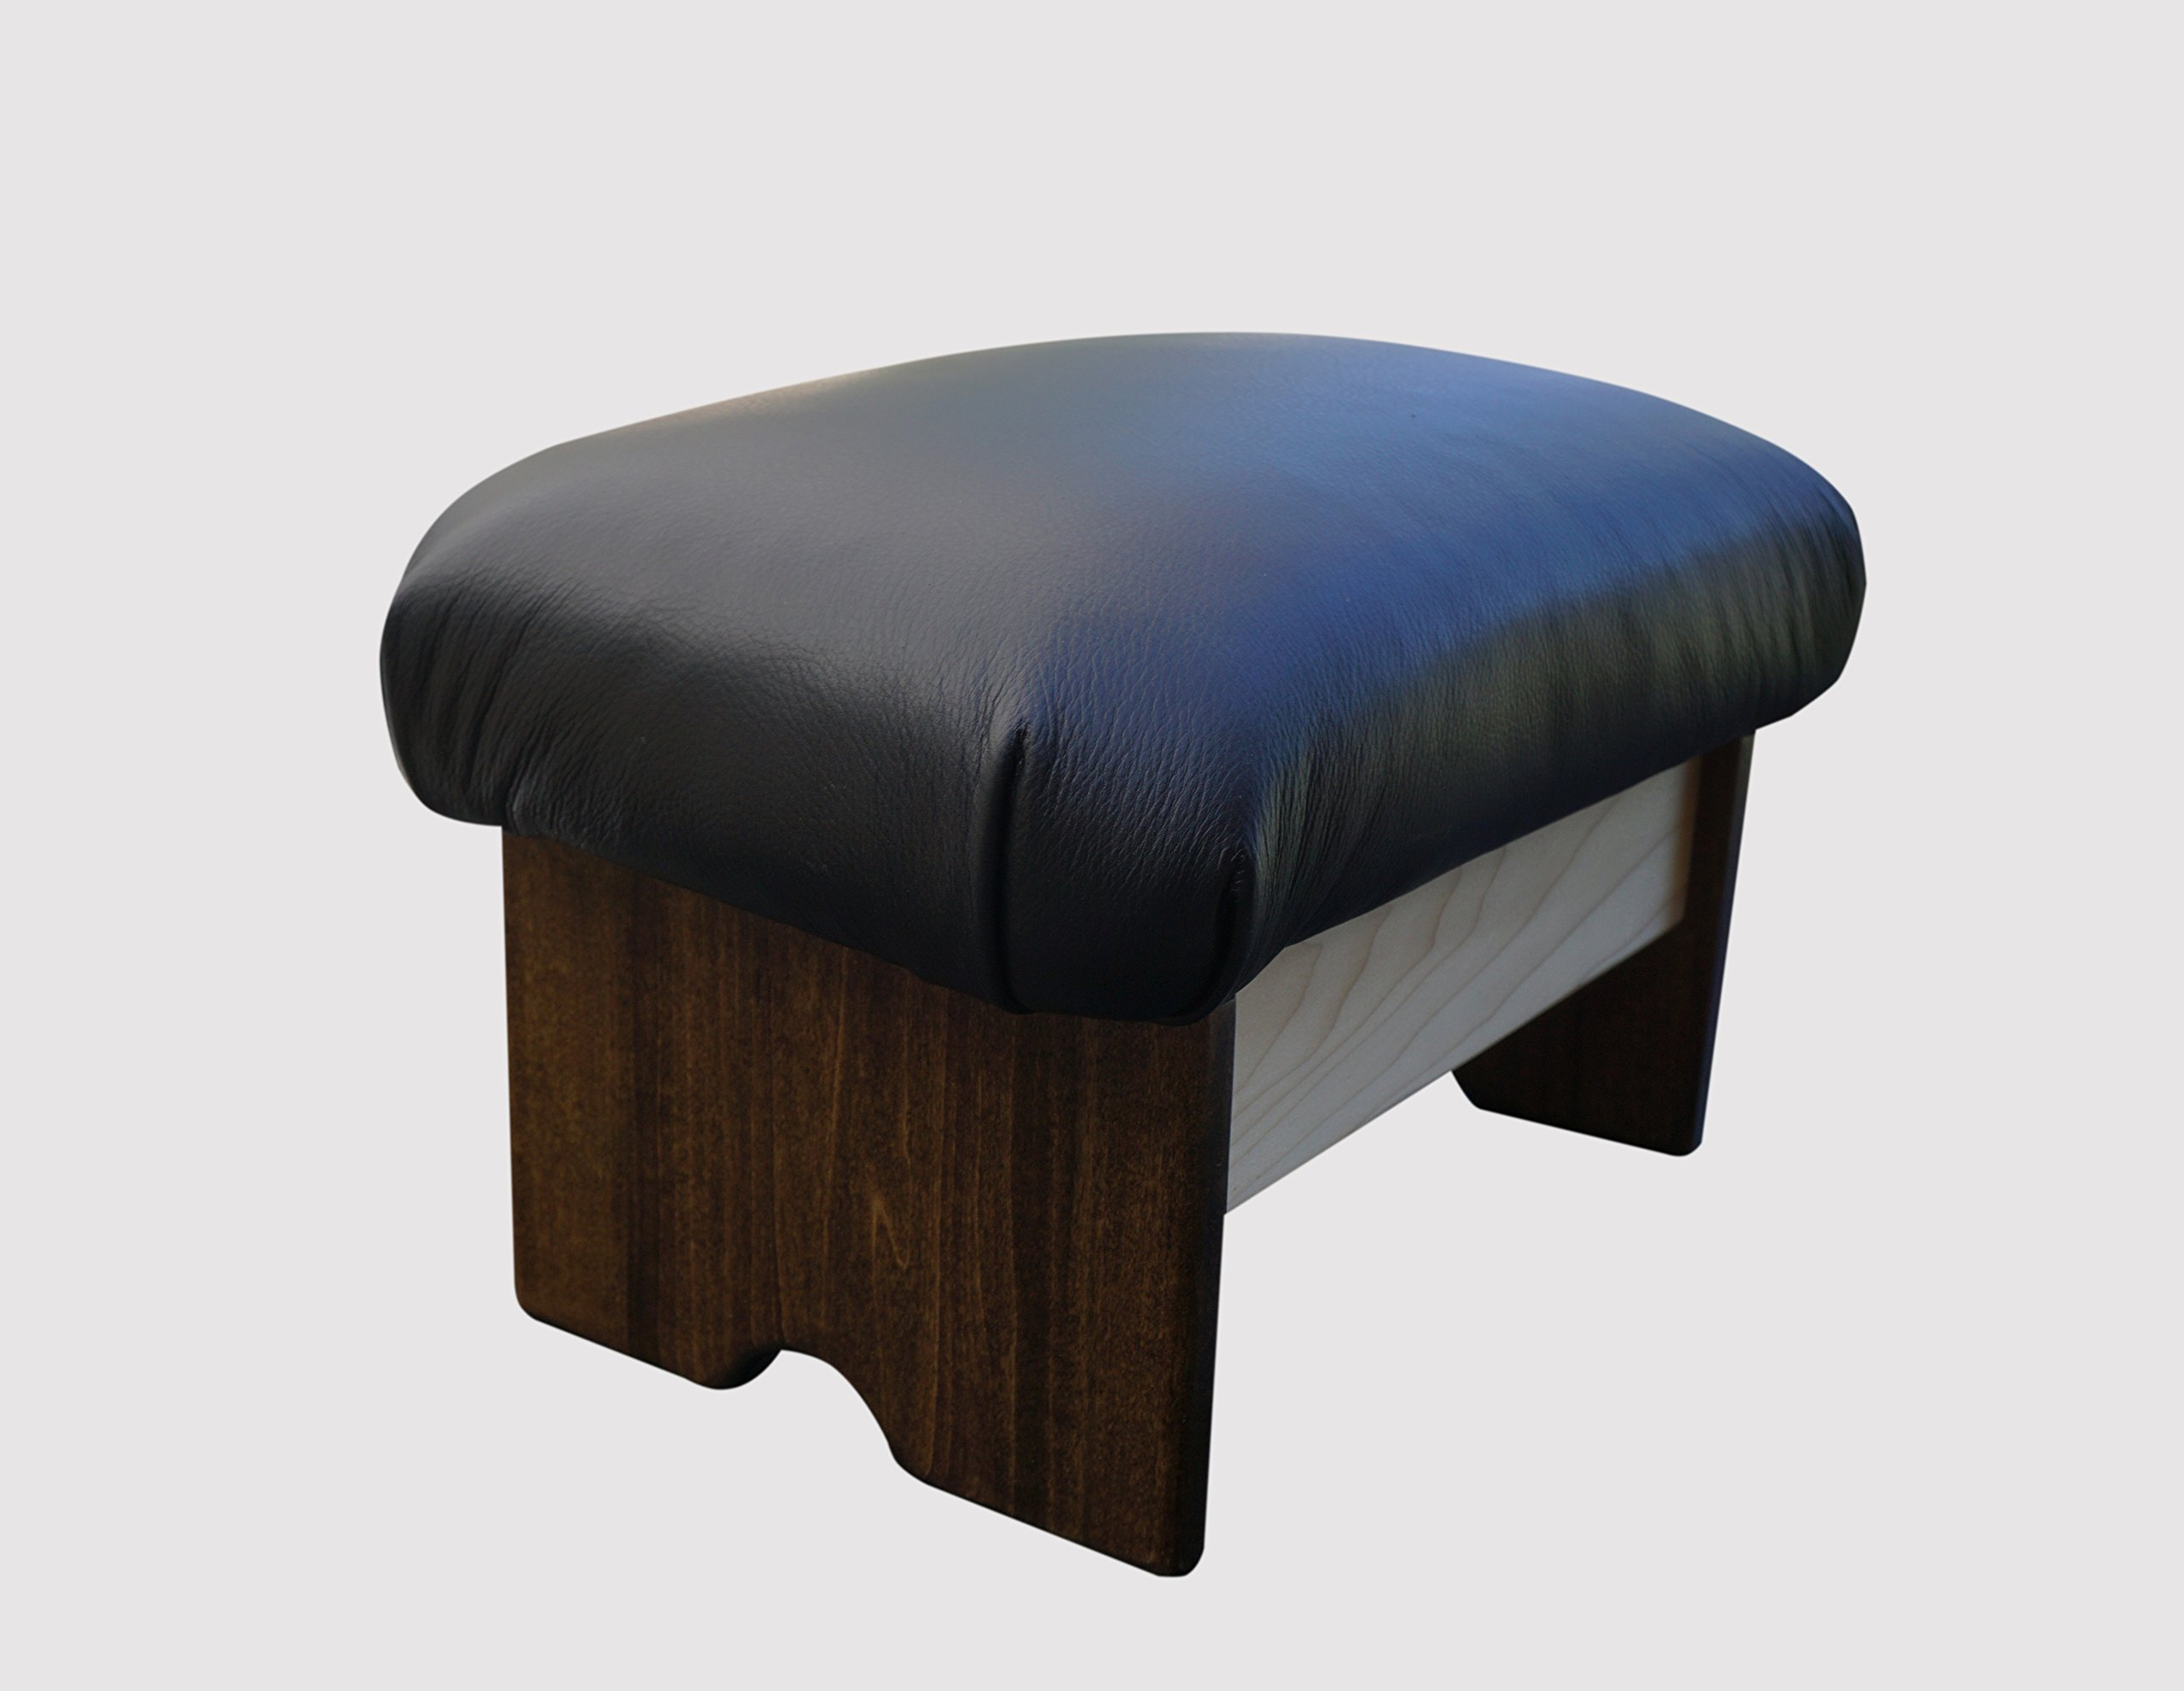 KR Ideas Padded Foot Stool: Licorice Leather (Made in the USA) (Chic Stain - 9'' Tall)